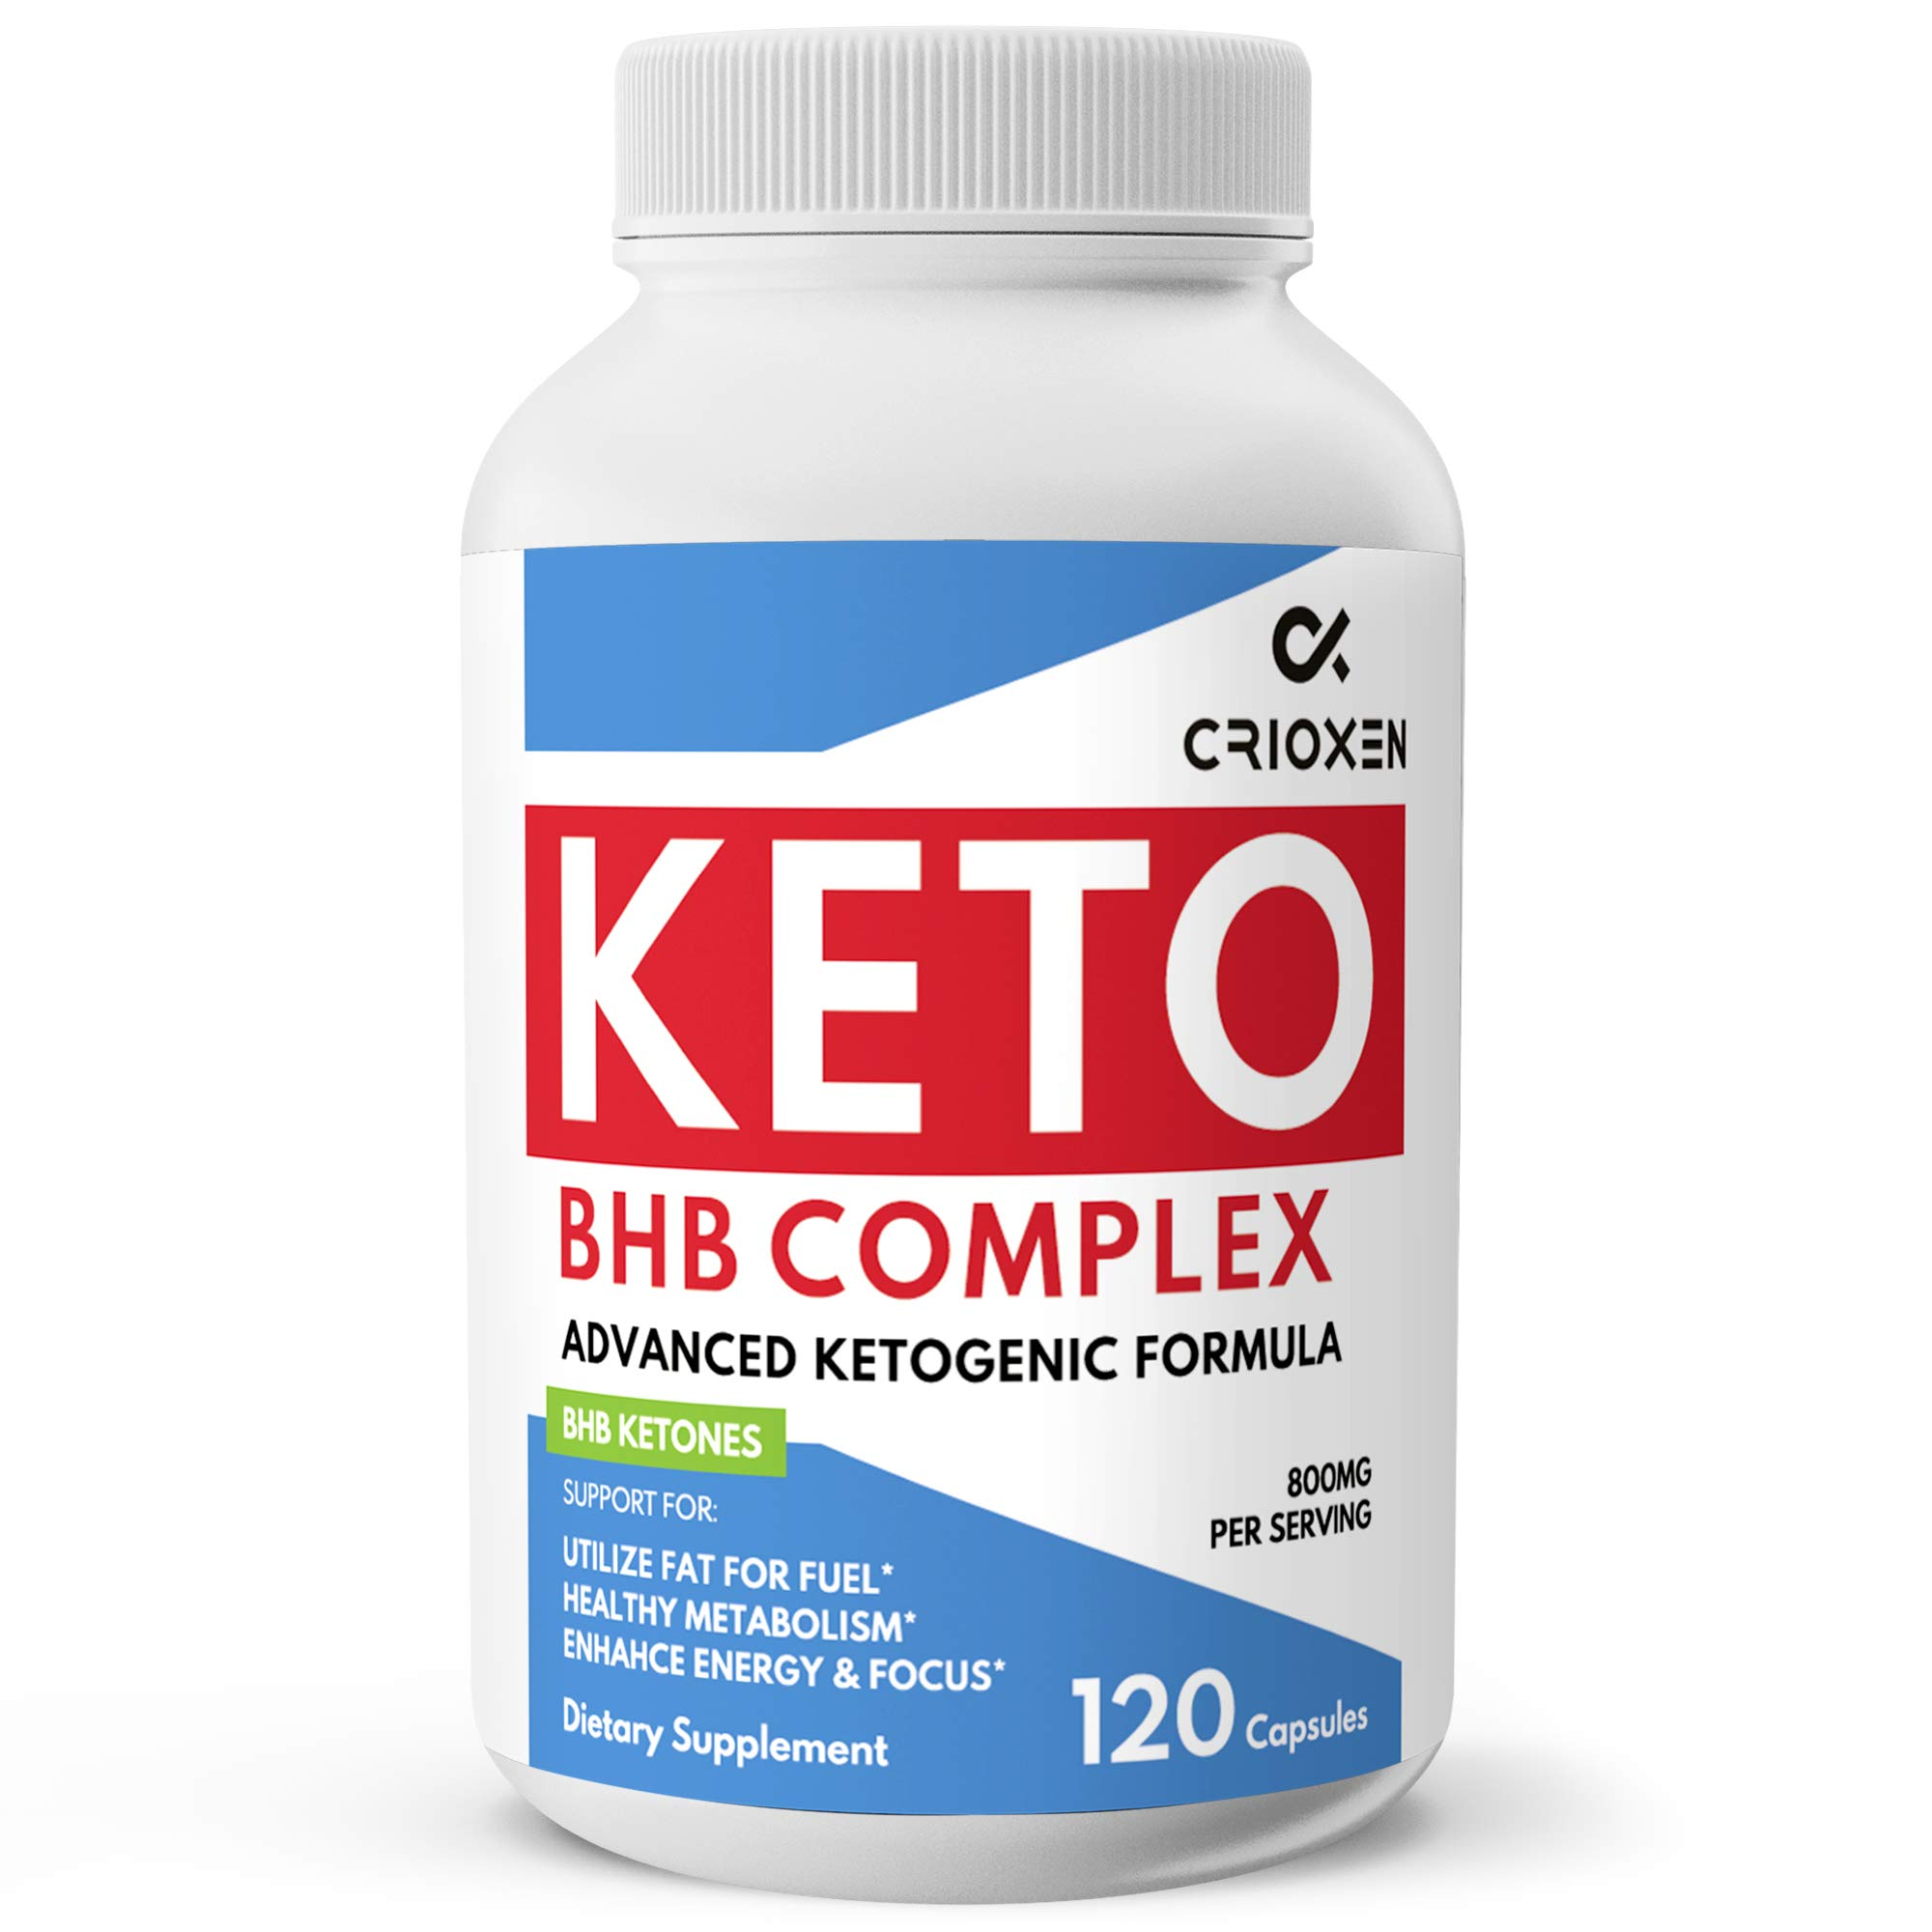 Pure Keto Diet Pills 120 Capsules- Advanced Keto Supplement Pure BHB Exogenous Instant Ketones Salts to Kickstart Ketosis Boost Energy and Focus for Men and Women 60 Day Supply